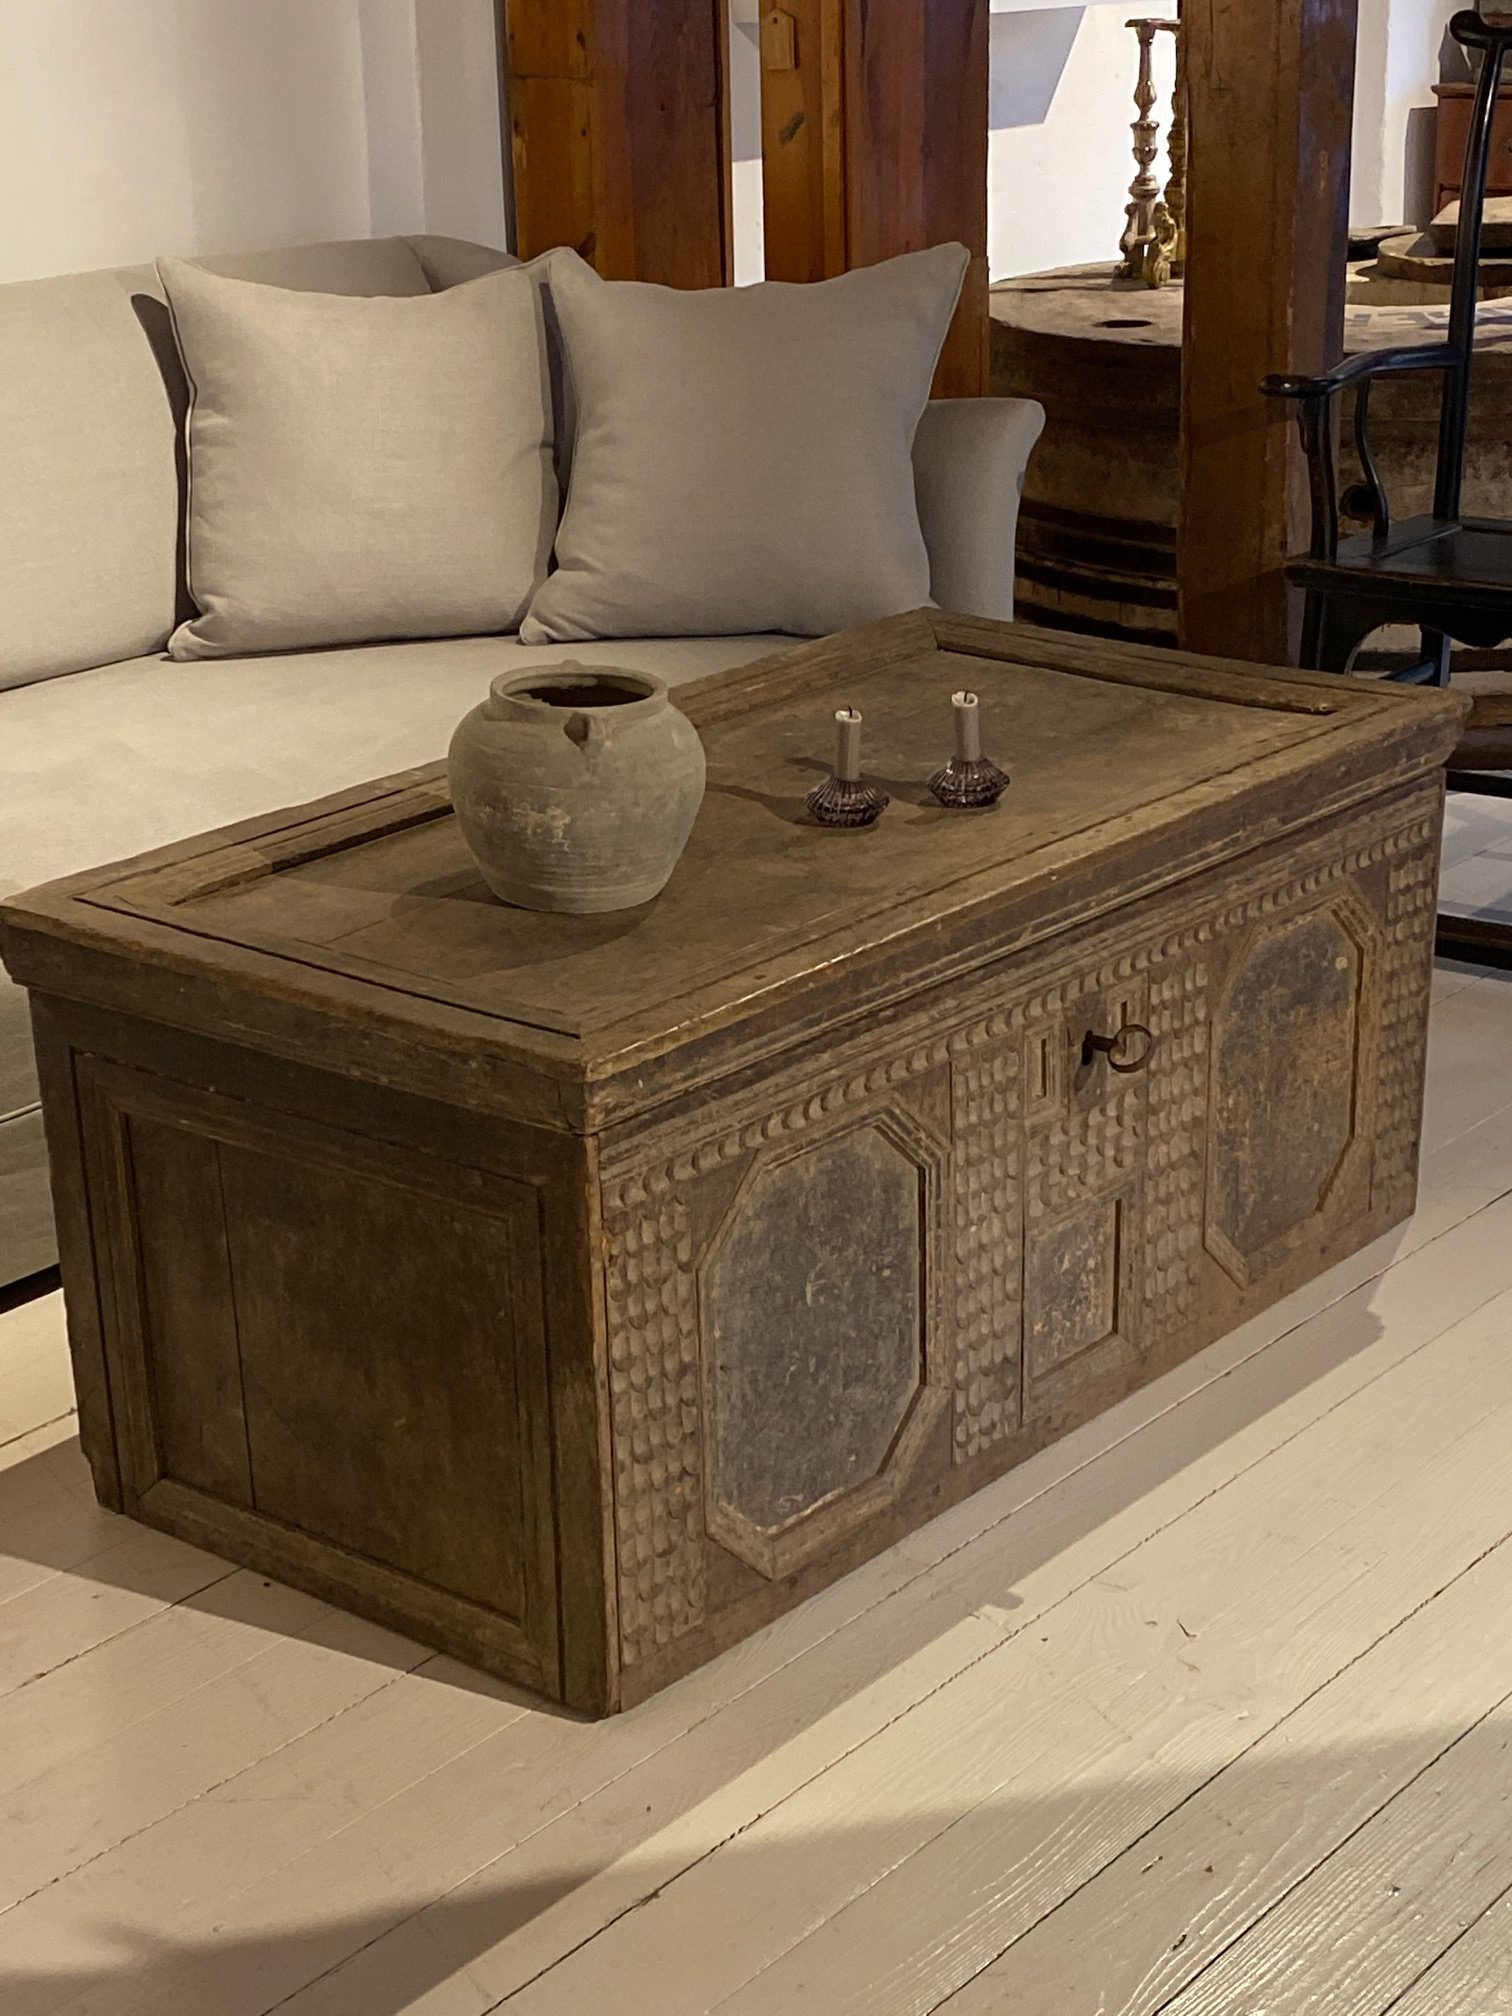 17th Century German Oak Chest - Console or Sofatable